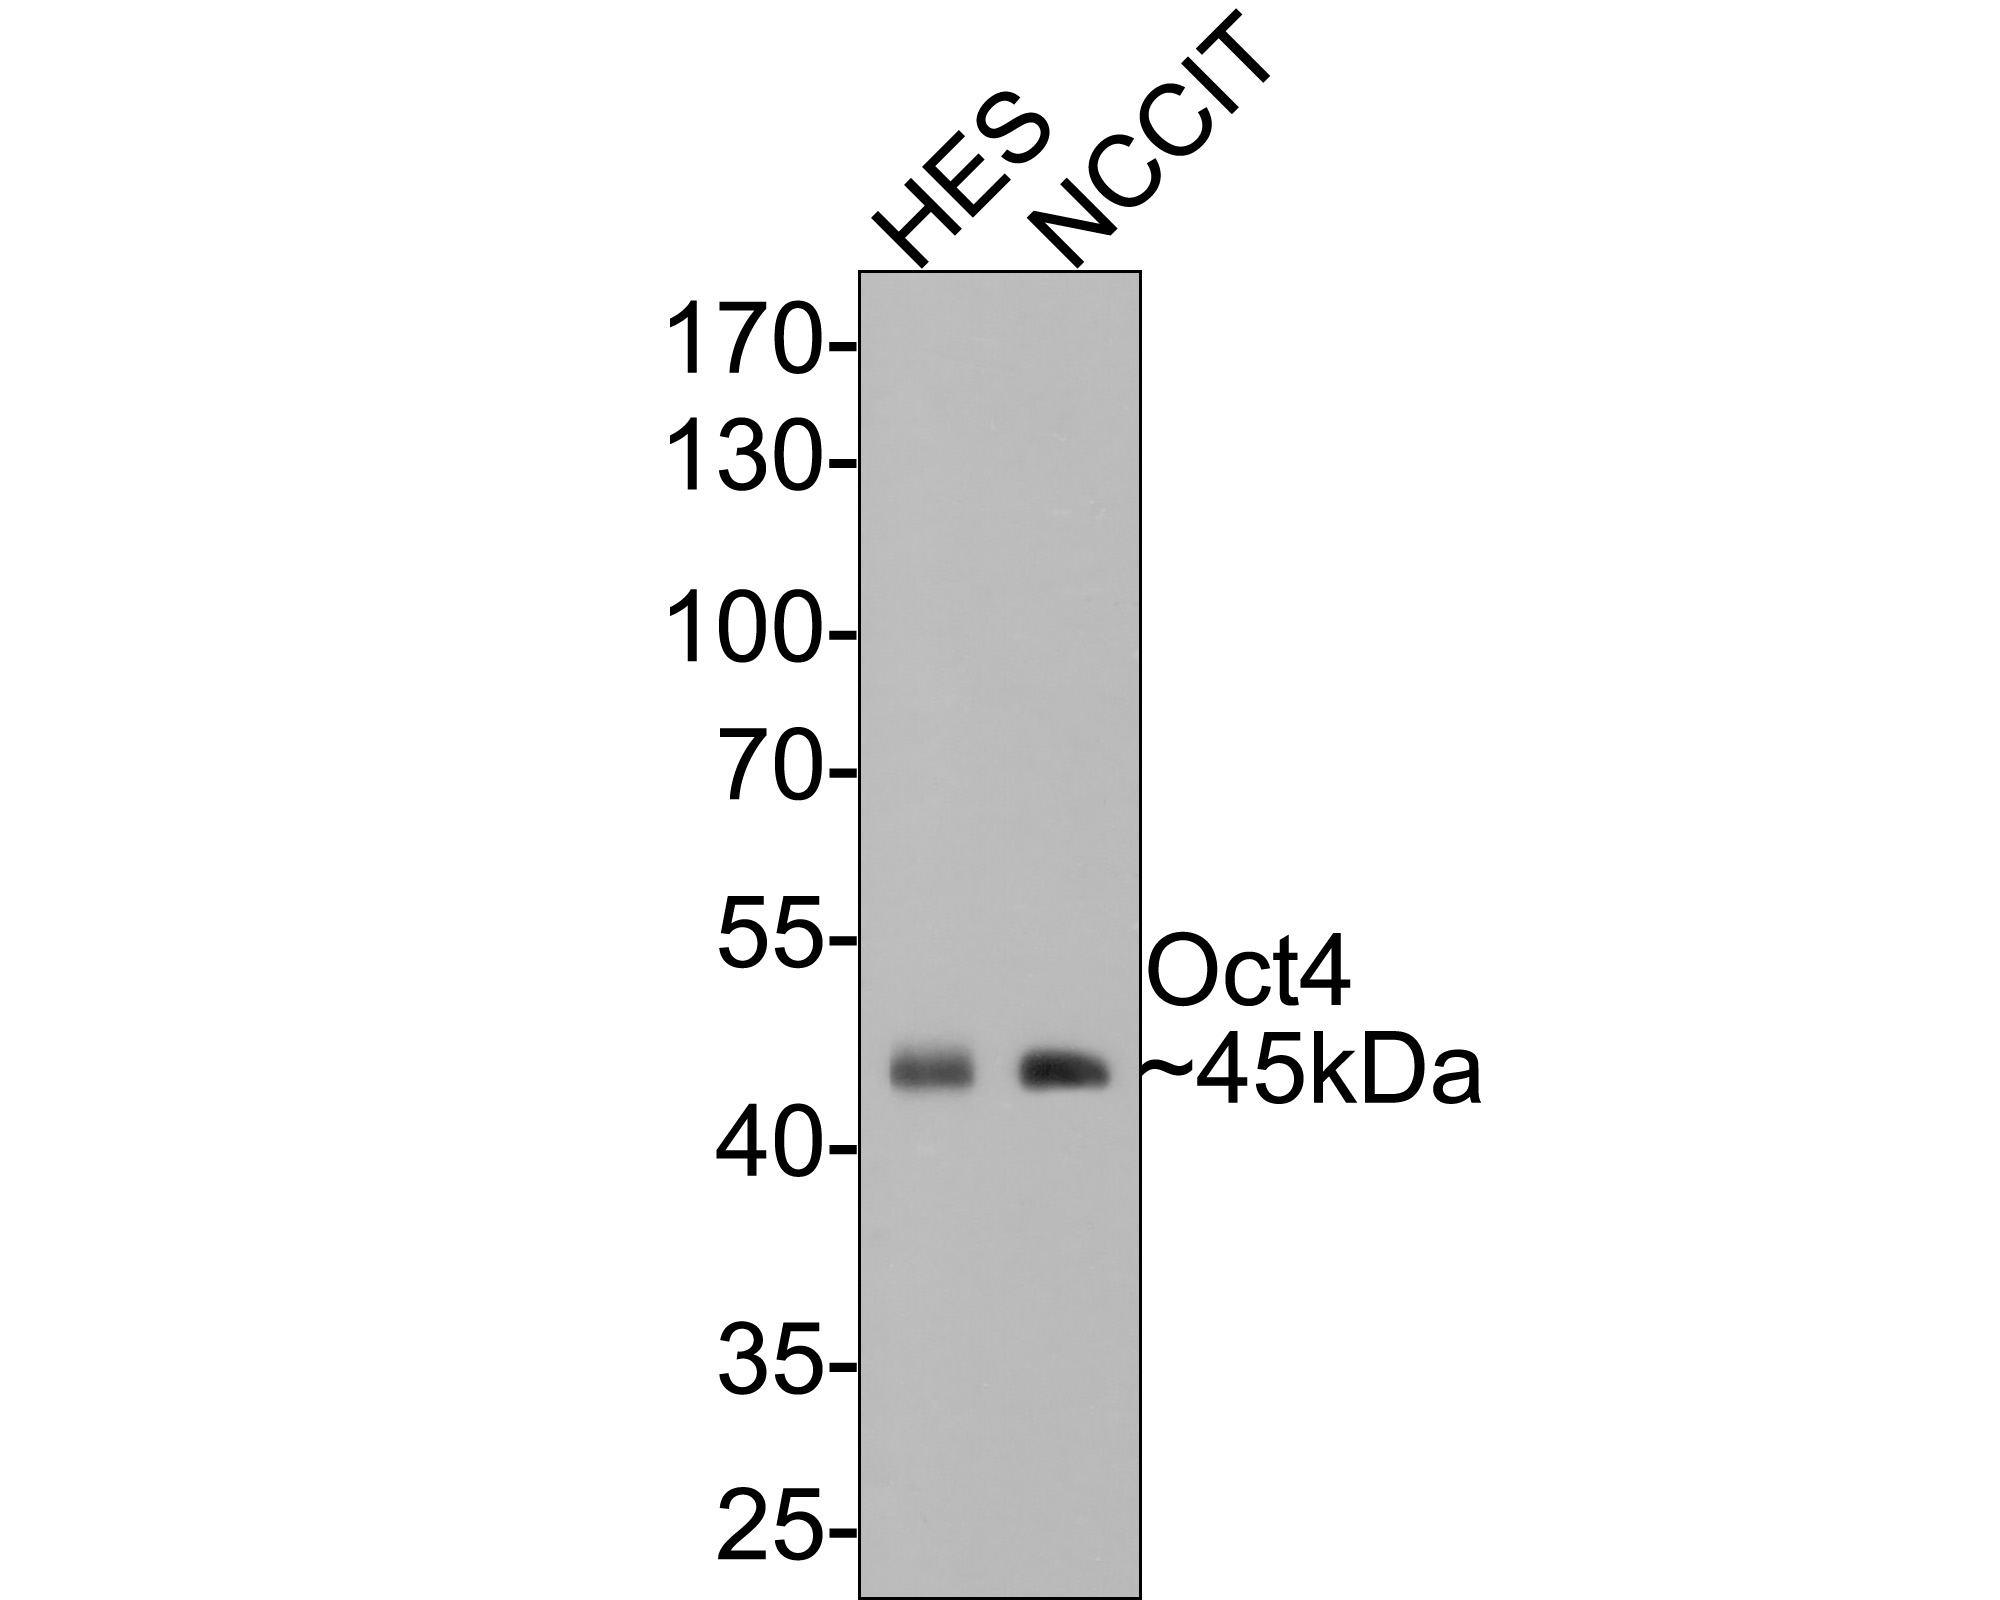 Western blot analysis of Oct4 on different lysates. Proteins were transferred to a PVDF membrane and blocked with 5% BSA in PBS for 1 hour at room temperature. The primary antibody (ET1612-20, 1/500) was used in 5% BSA at room temperature for 2 hours. Goat Anti-Rabbit IgG - HRP Secondary Antibody (HA1001) at 1:5,000 dilution was used for 1 hour at room temperature.<br /> Positive control: <br /> Lane 1: F9 cell lysate<br /> Lane 2: HES cell lysate